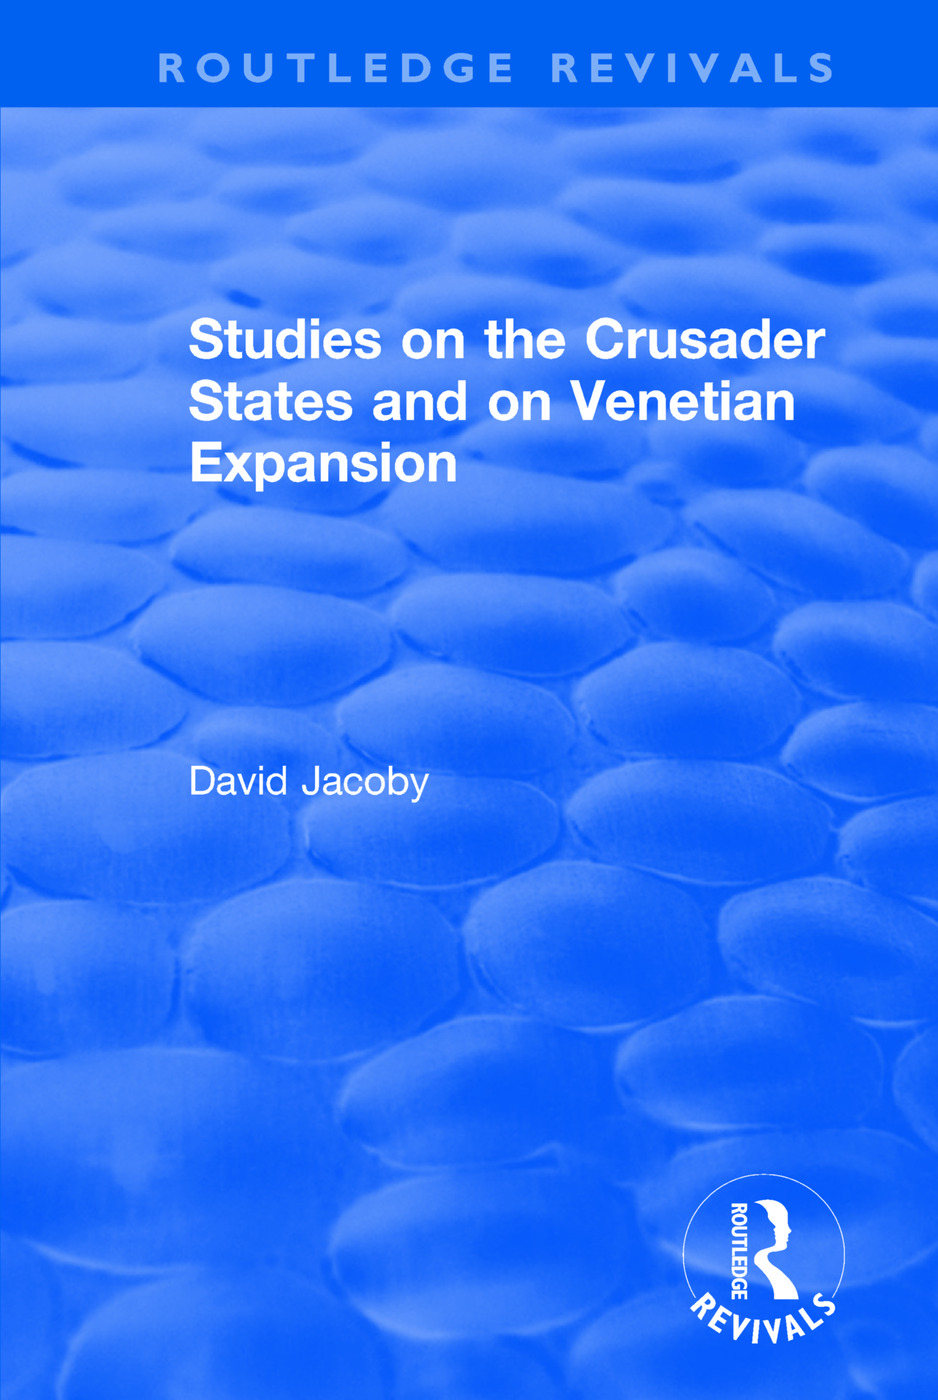 Studies on the Crusader States and on Venetian Expansion